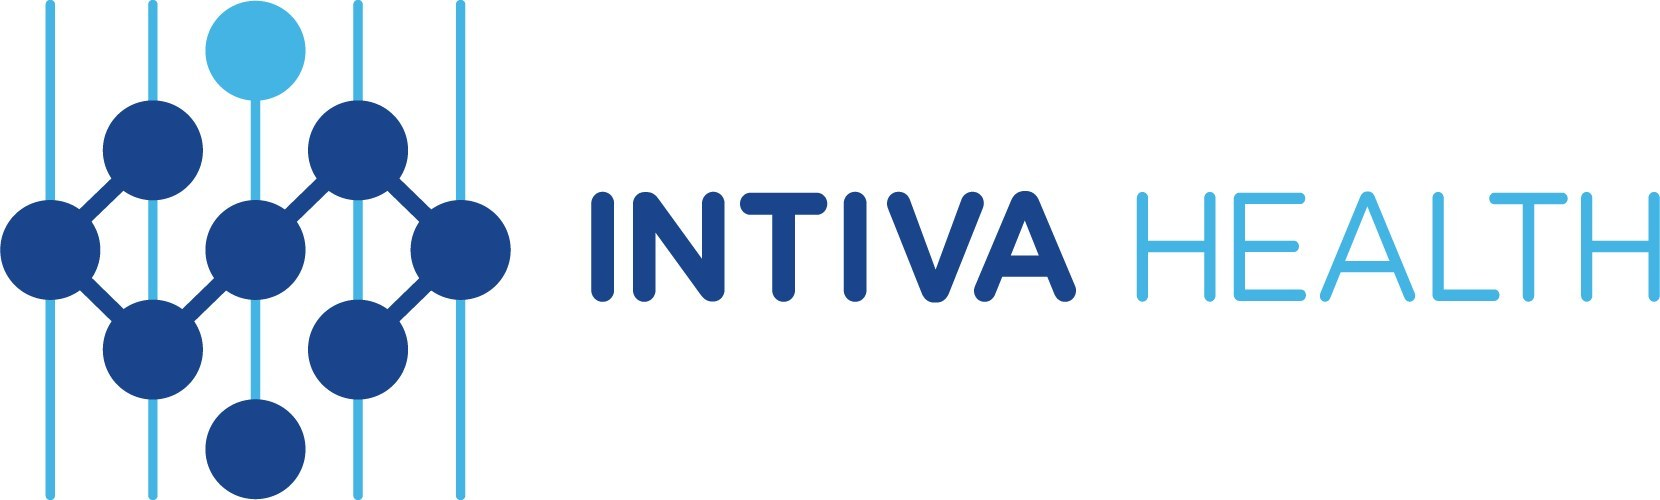 Intiva Health Adds Thousands of Providers Through